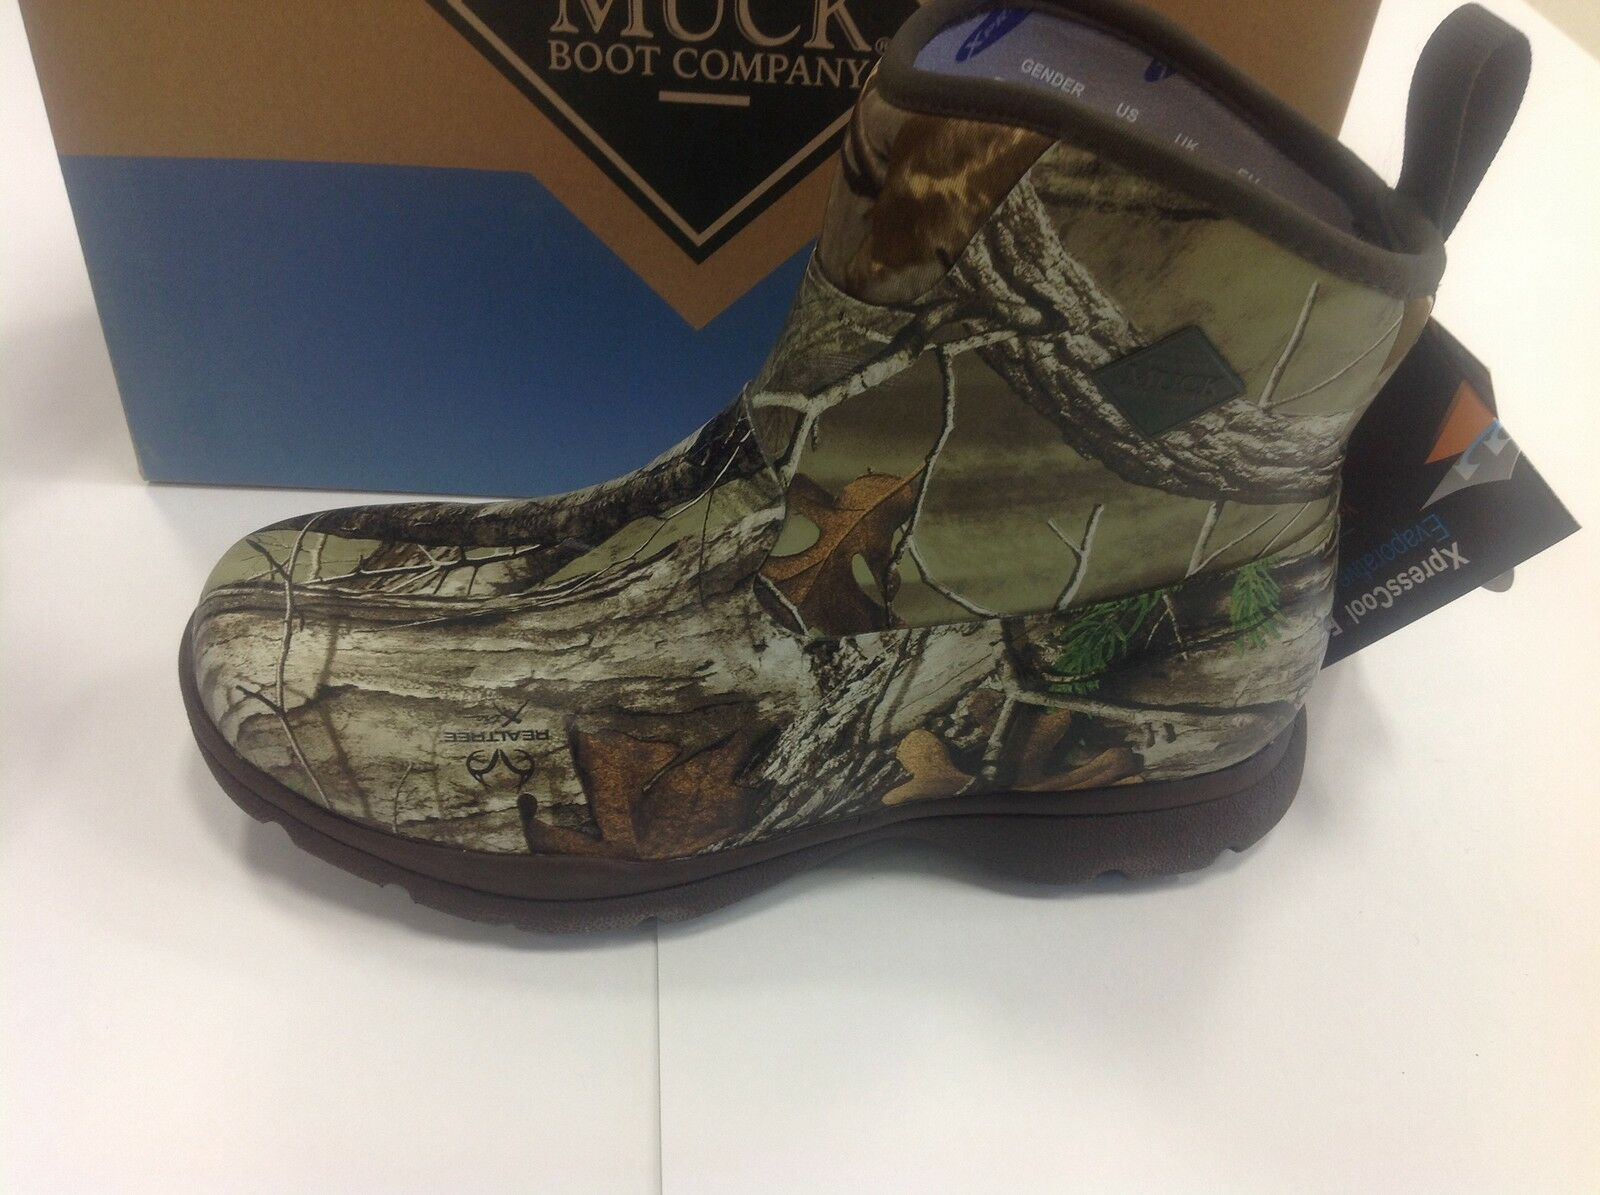 NEW Muck Excursion Pro Mid Boots Camo FRMC-RTX 6,7,8,9,10,11 Cool Waterproof Dry